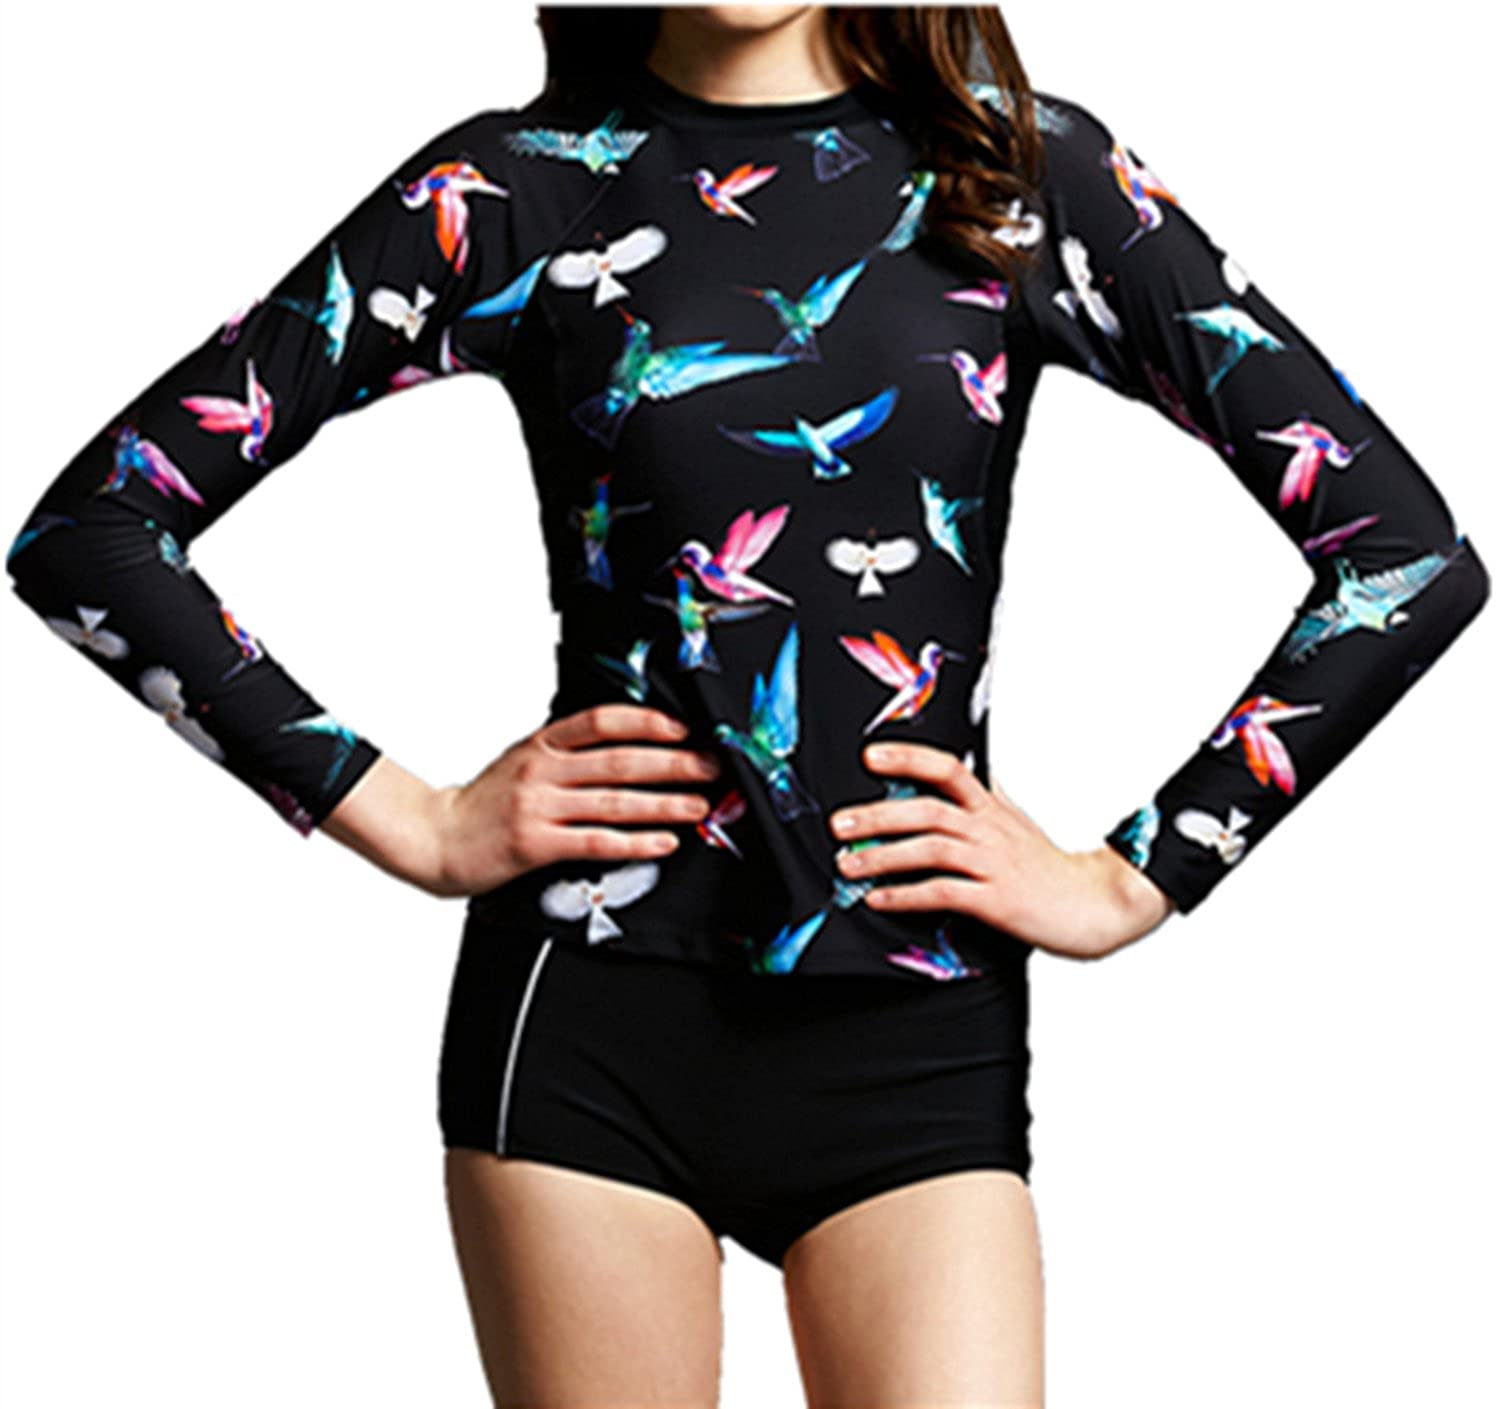 Crazycatz@ Girls Rash Guard Sets UV Protection Rash Gurads Top+Bottom